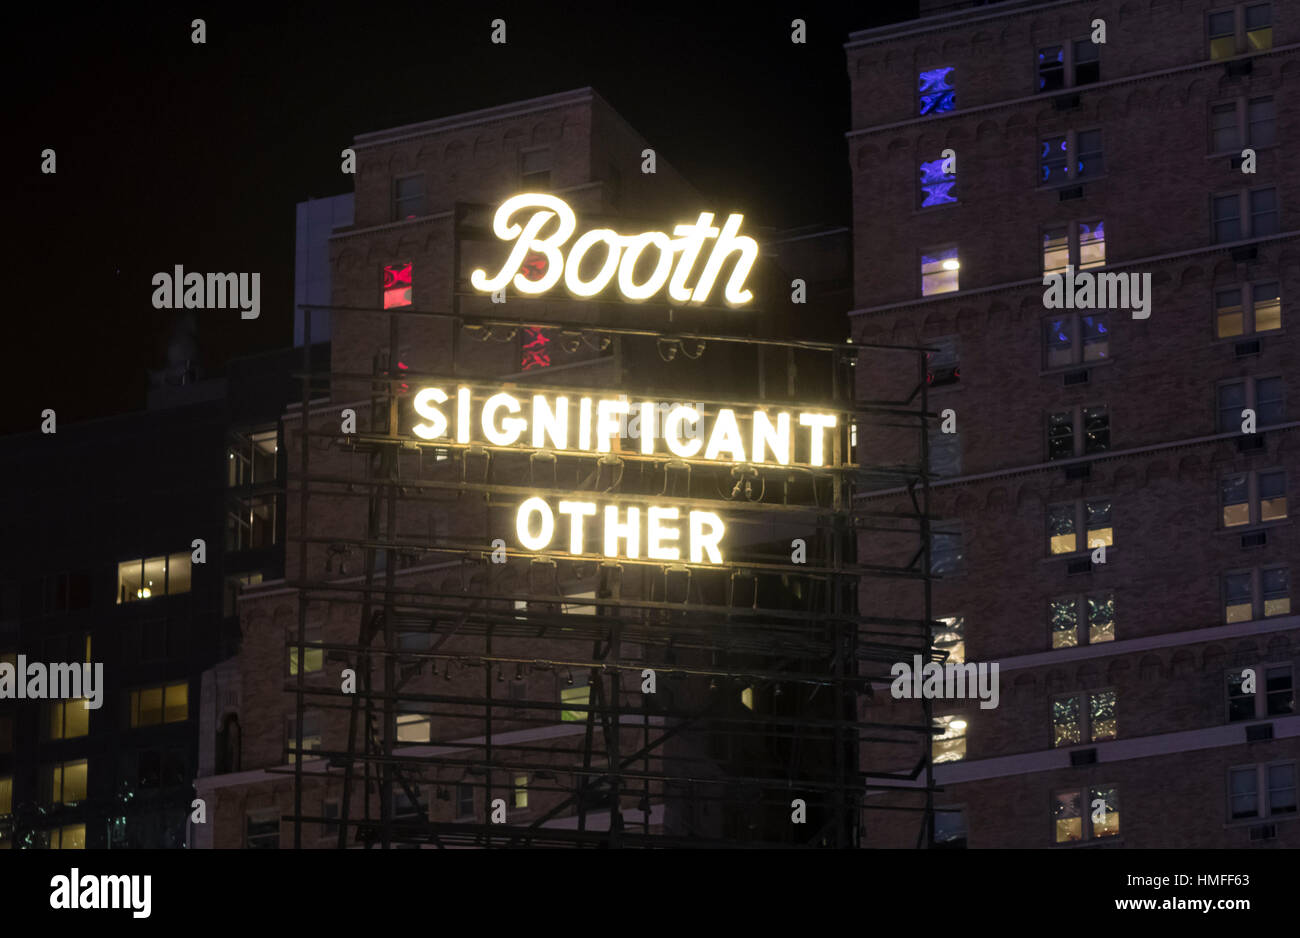 Neon sign for the play Significant Other at the Booth Theatre in New York City - Stock Image